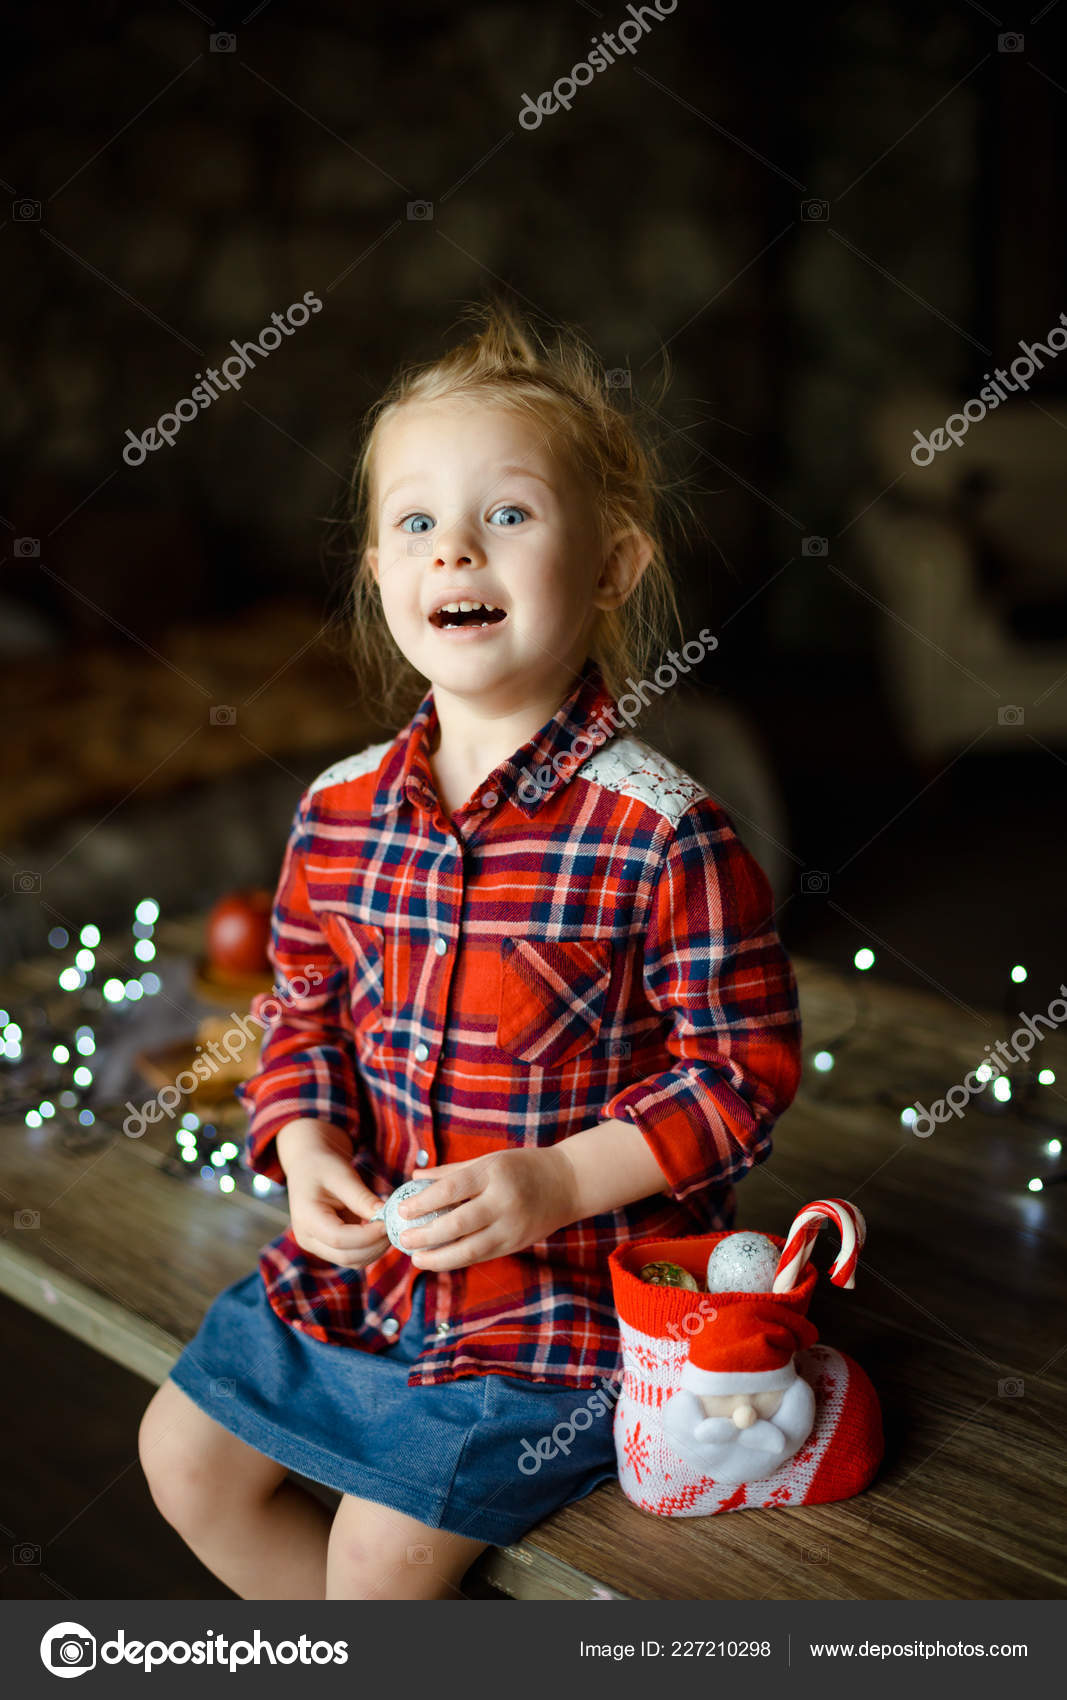 ea5f46852 A beautiful little blonde in a traditional plaid shirt opens a chocolate  bar from her sweet Christmas gift, sitting on a wooden table with a garland  in the ...